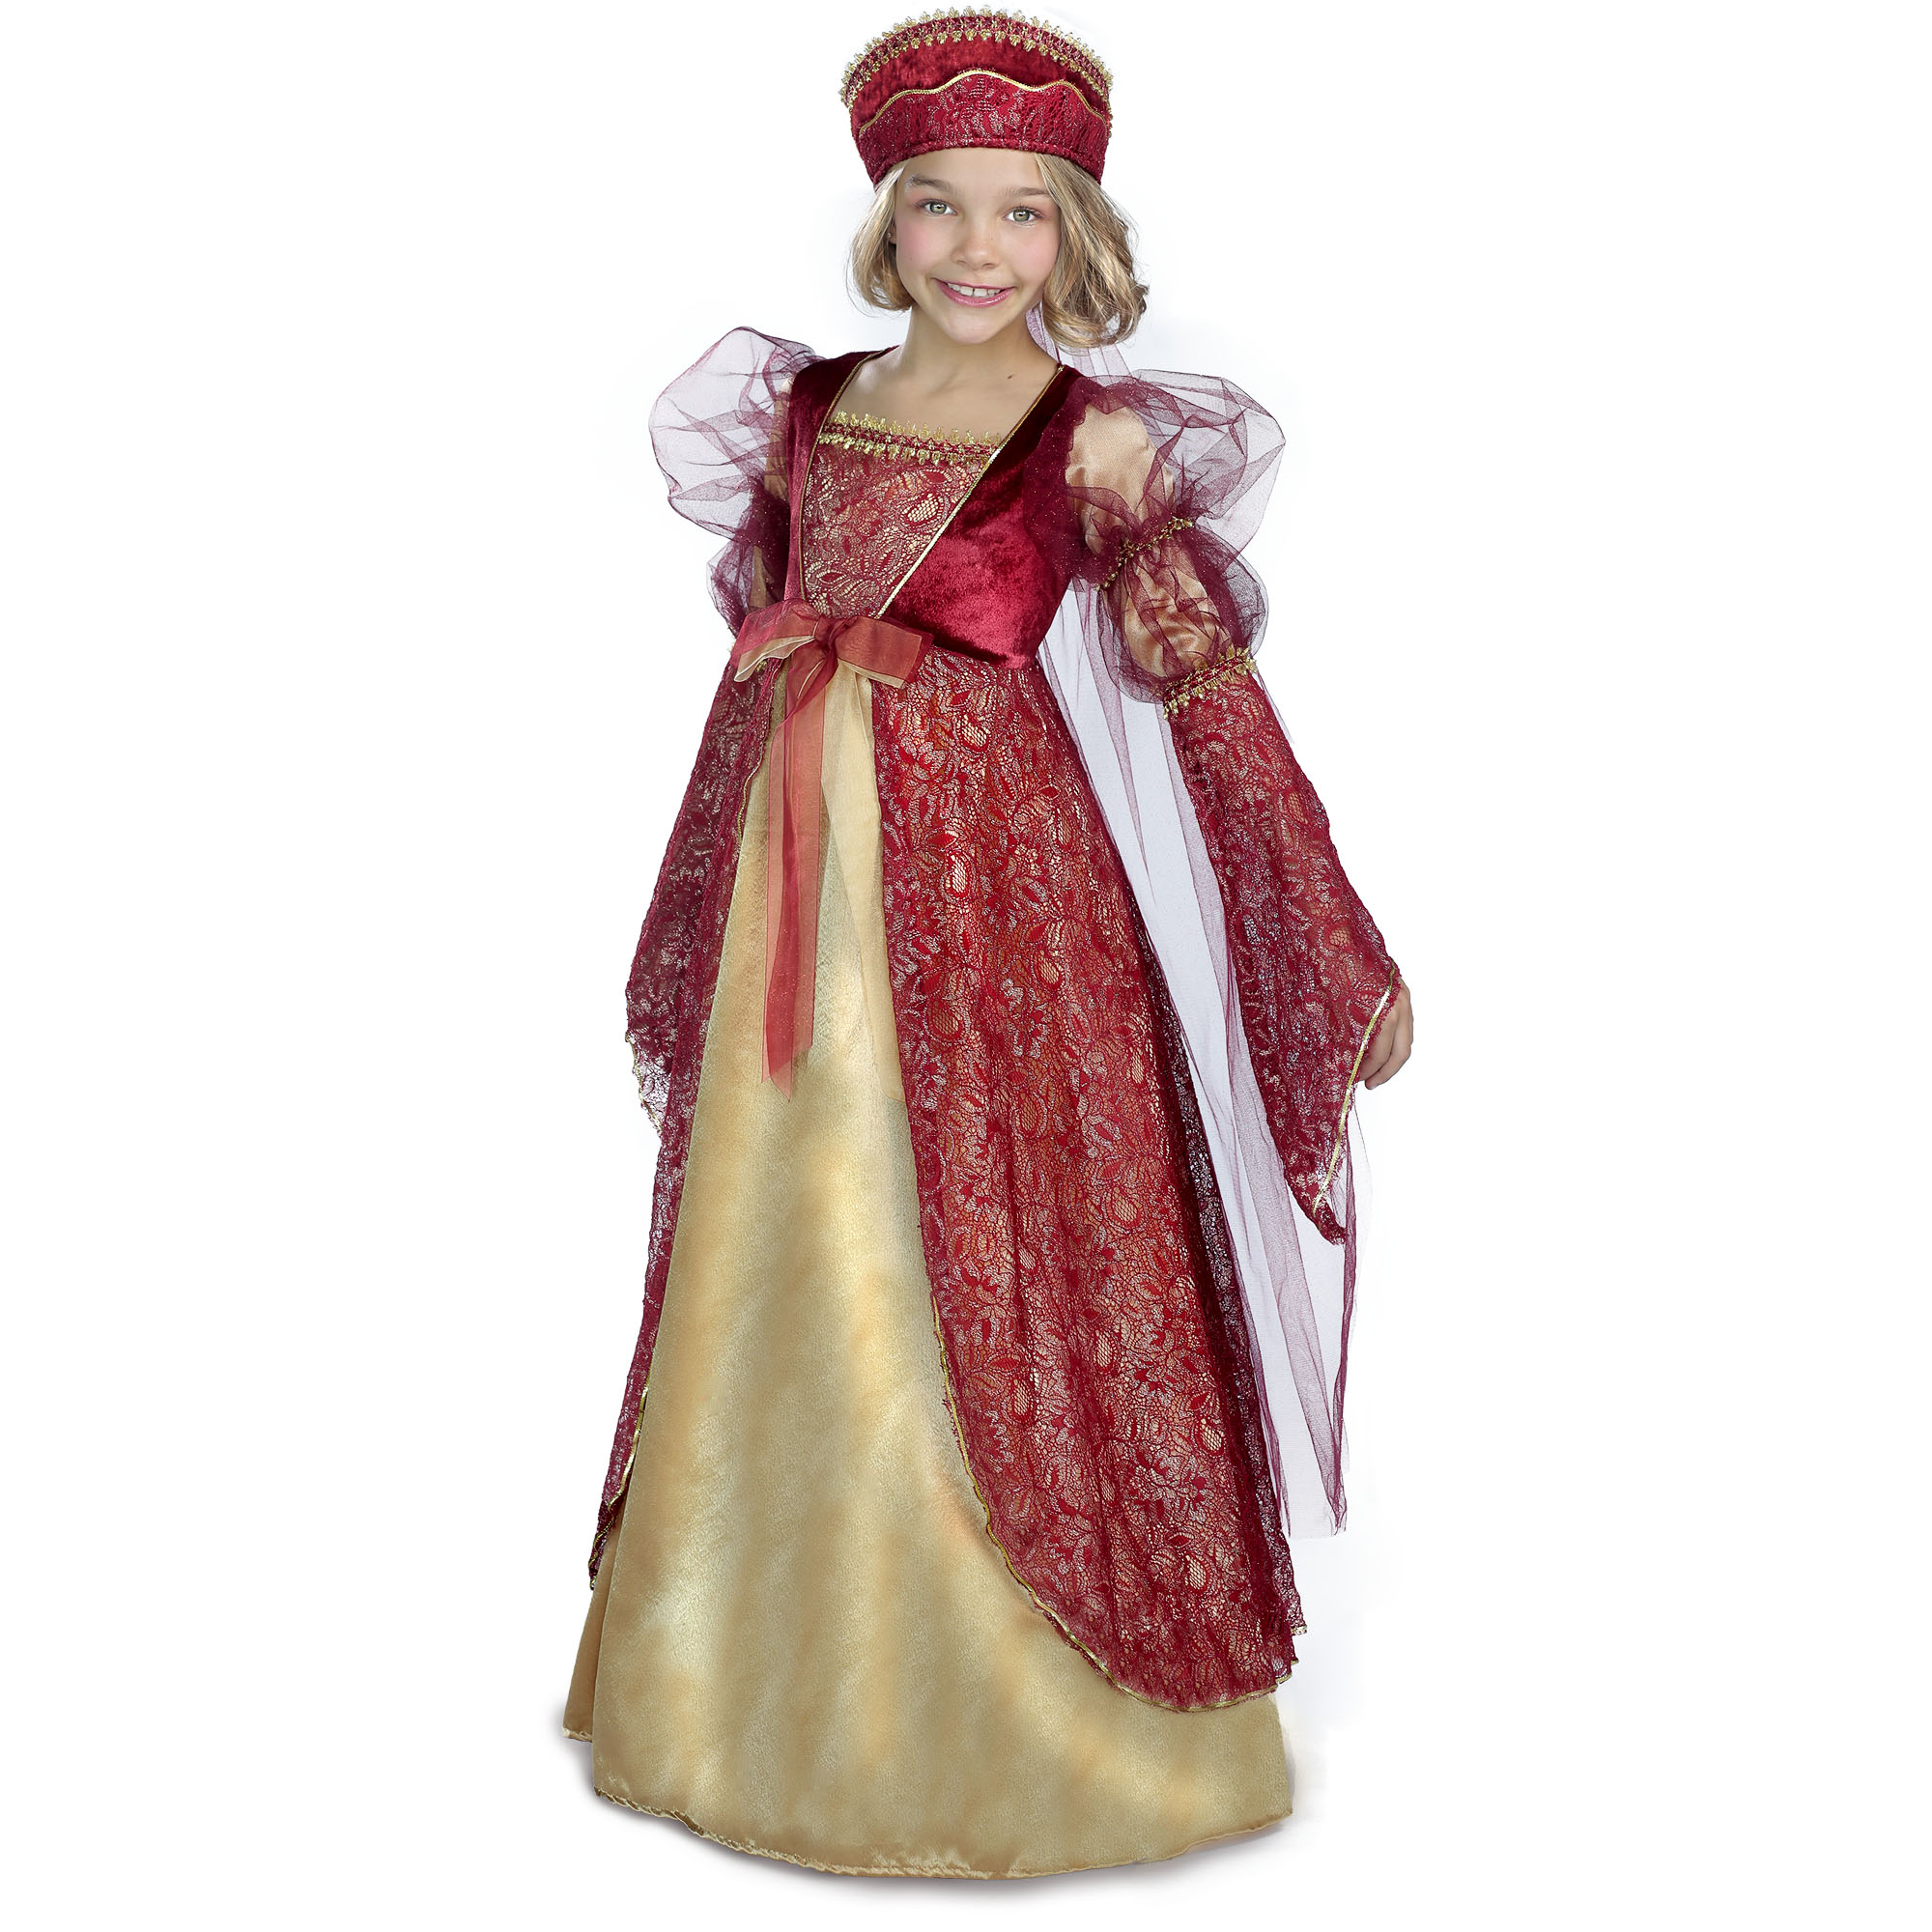 Princess Paradise Premium Princess Anne Child Costume